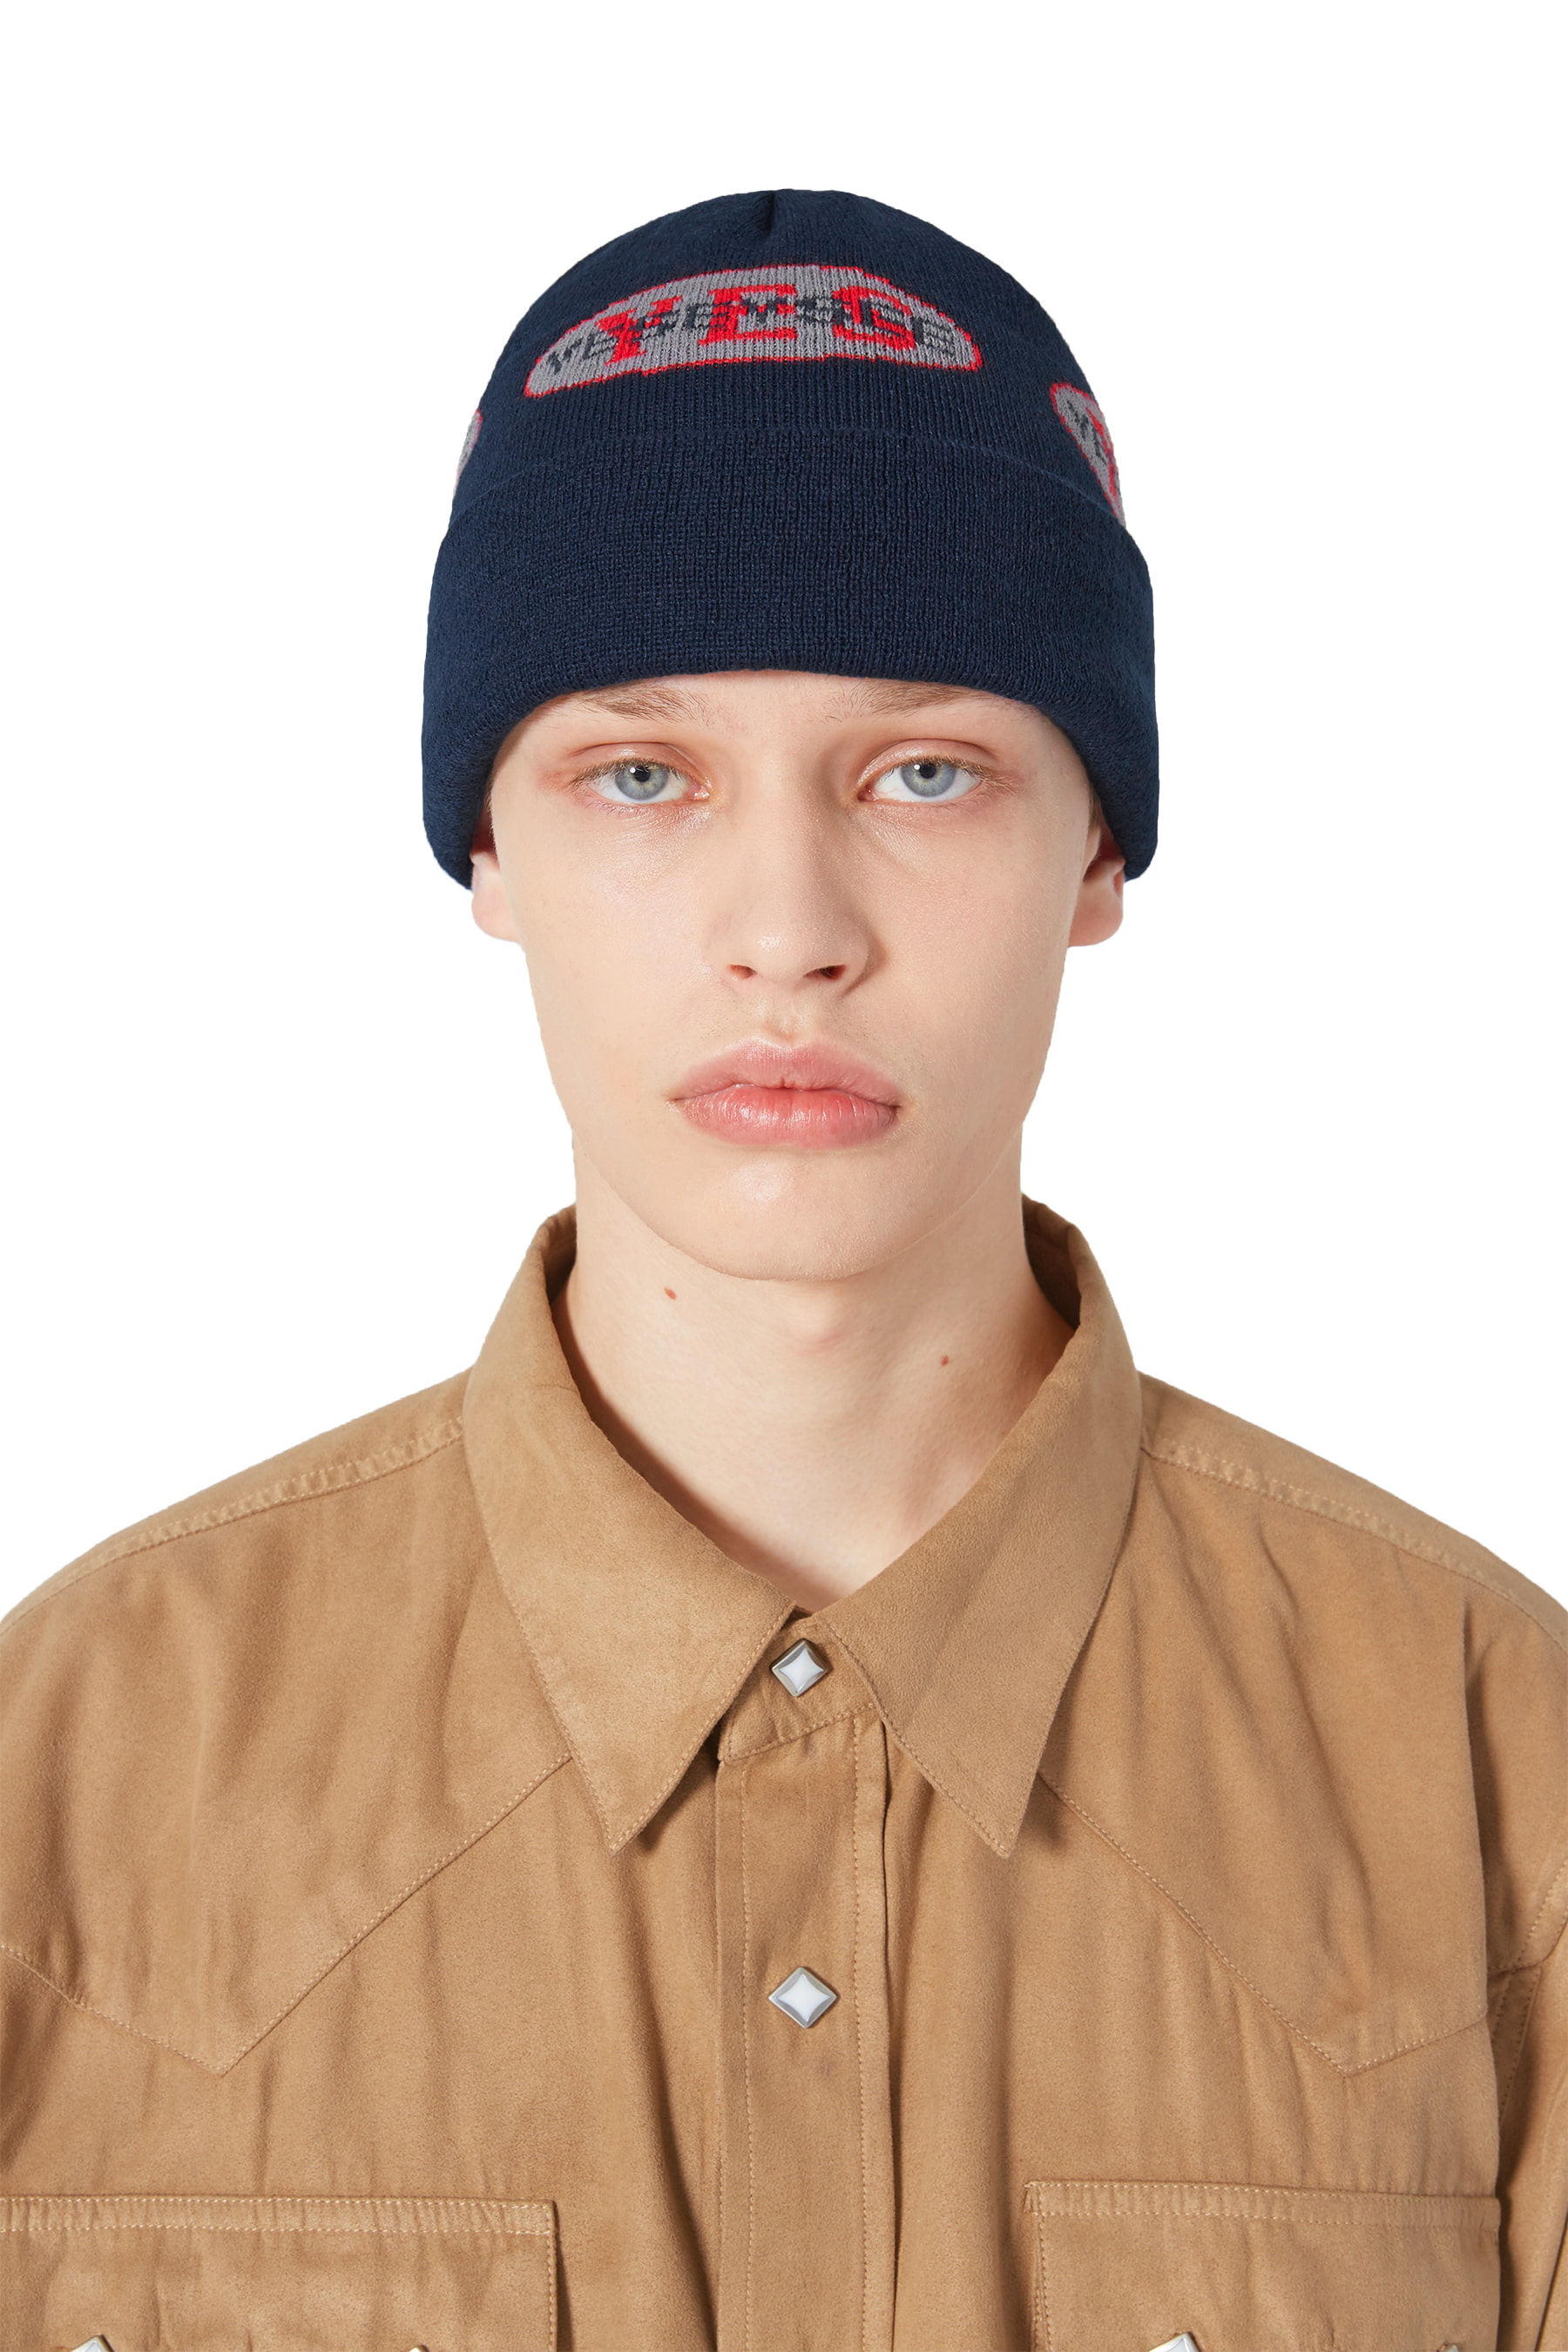 Y.E.S Engineer Beanie Navy